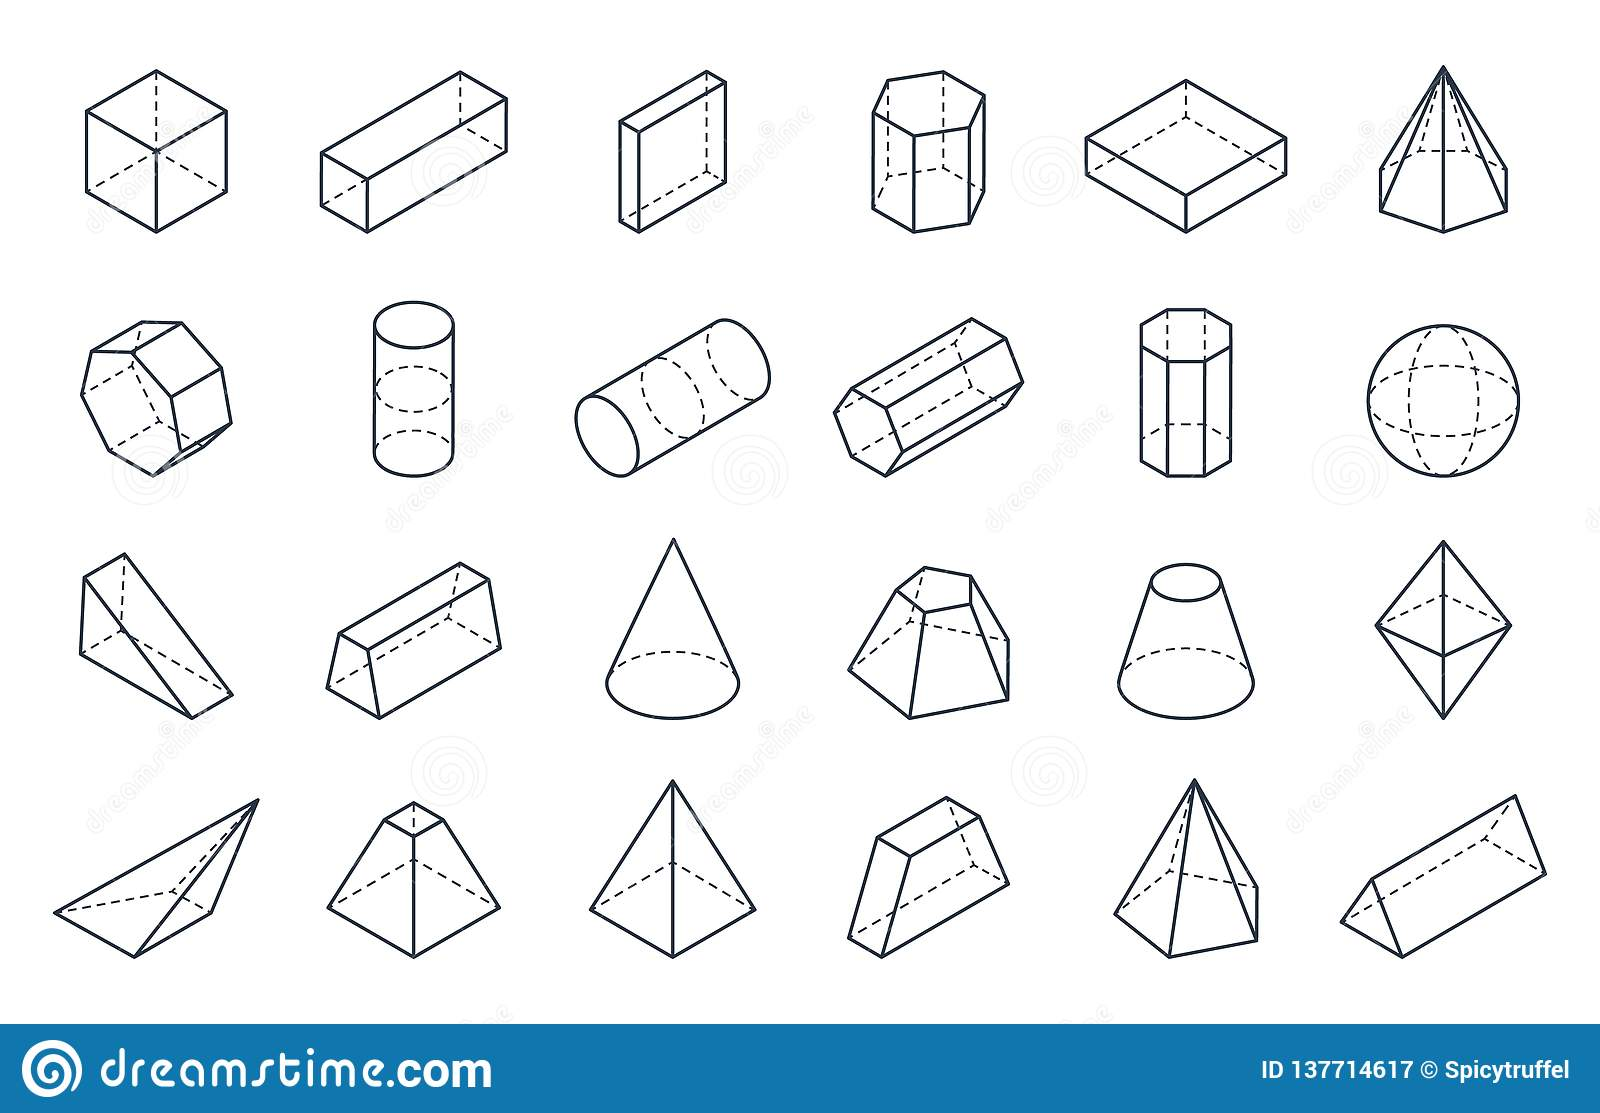 3D Geometric Shapes  Isometric Linear Forms, Cube Cone